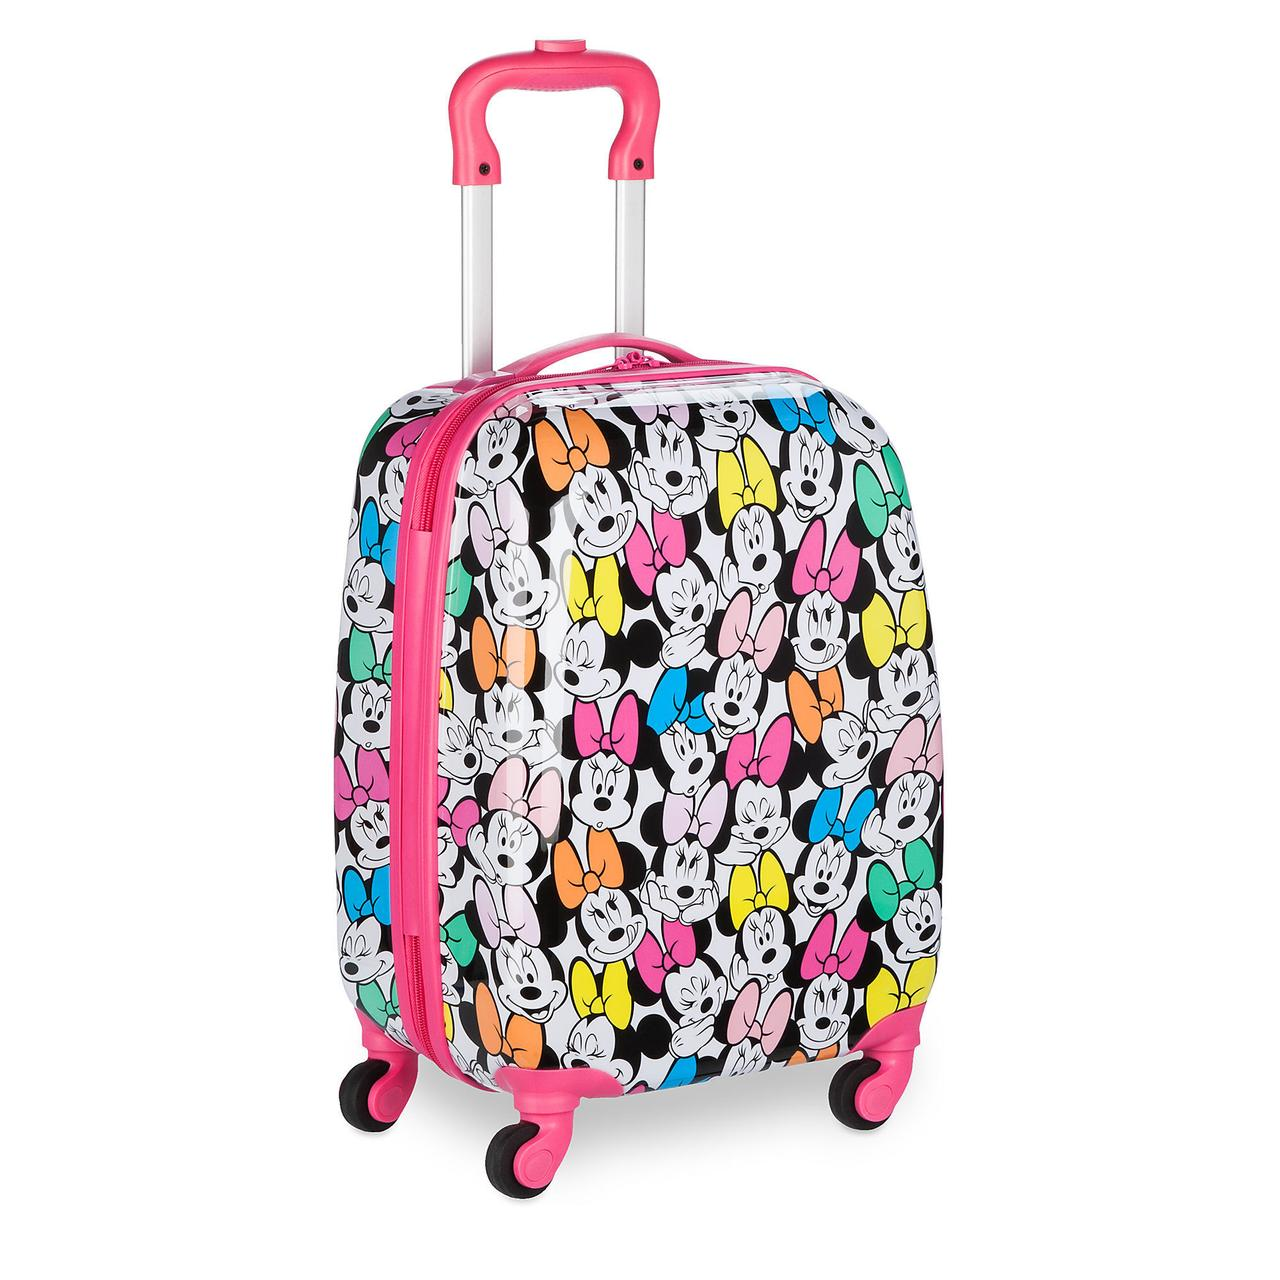 2c3993451a93 Чемодан детский Минни Маус на колесах Дисней Minnie Mouse Rolling Luggage  for Kids